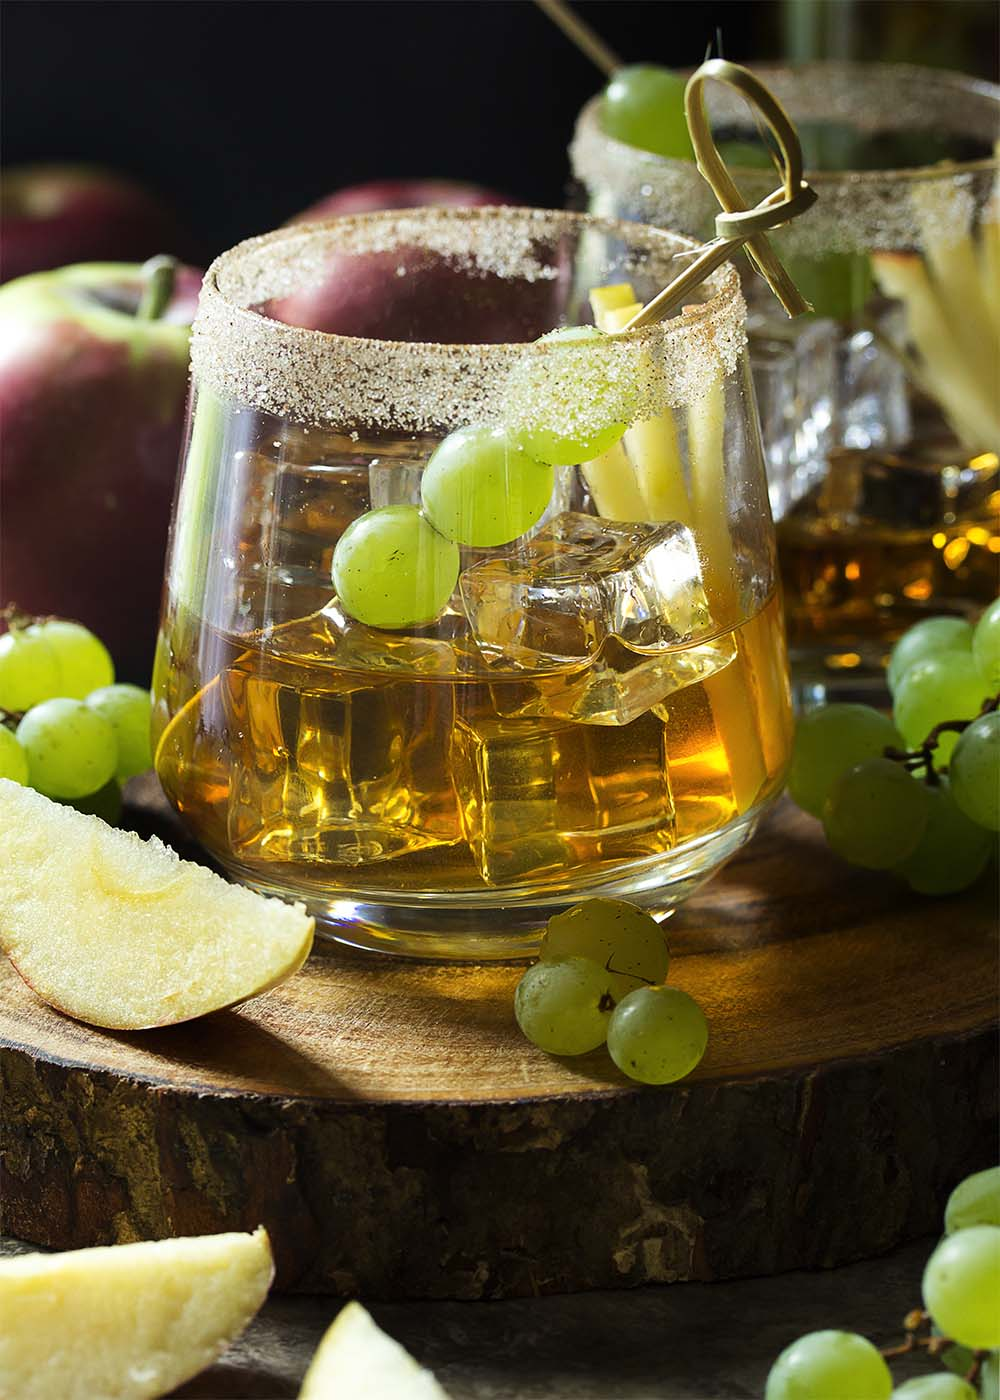 Welcome fall with this maple old fashioned which features maple syrup and apple infused bourbon for a very New England take on the classic cocktail.   justalittlebitofbacon.com